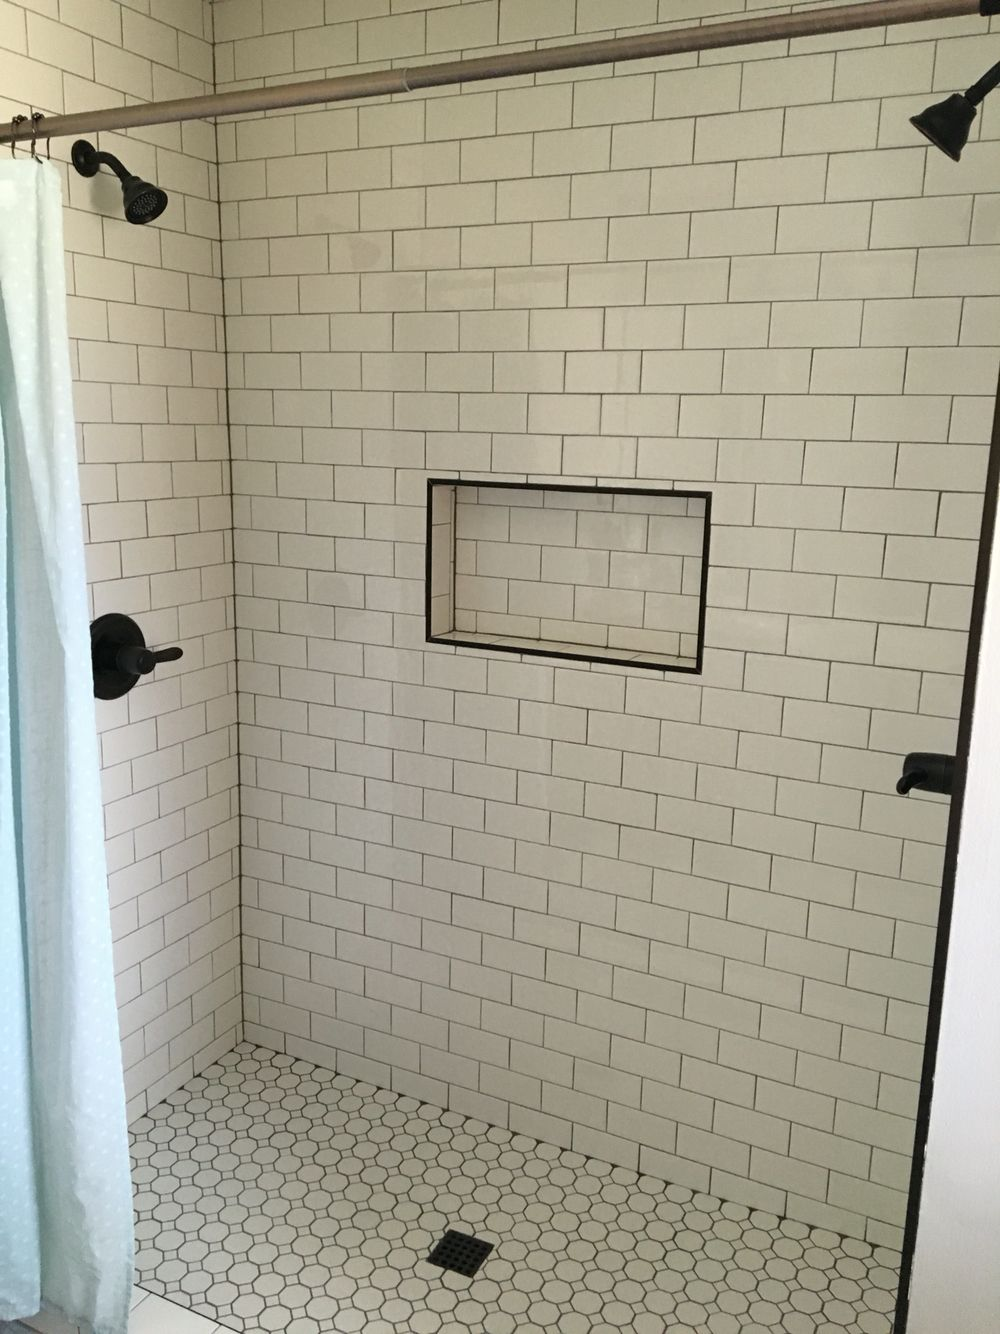 Dual Shower Heads And Subway Tile Master Bedroom